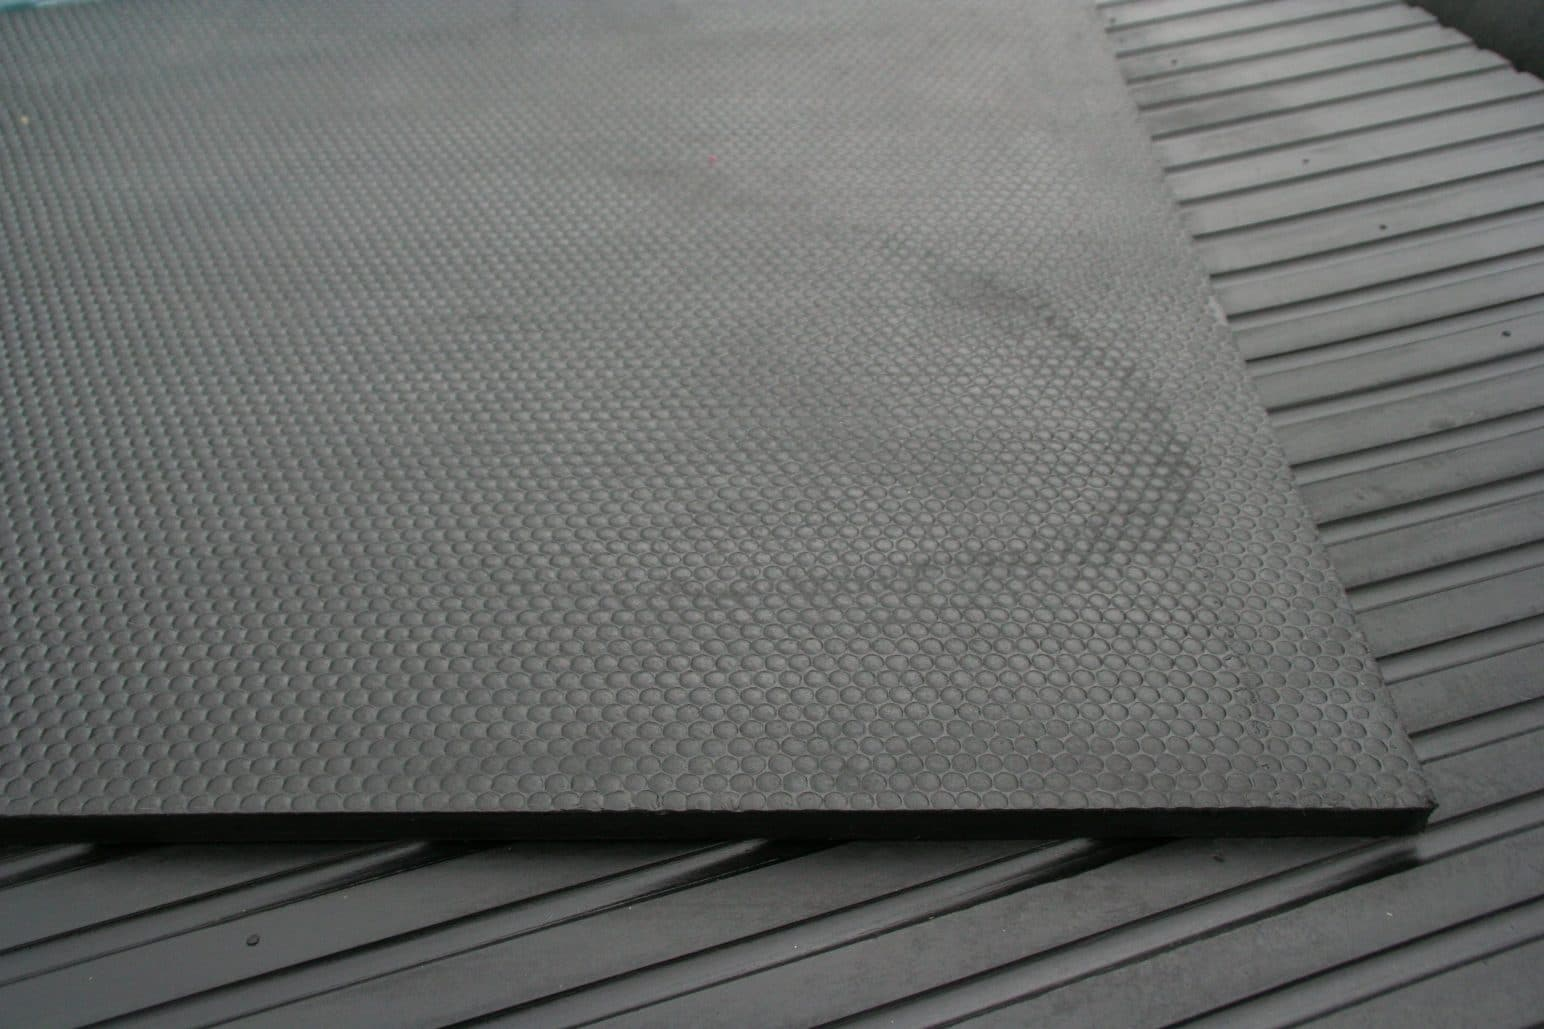 Hammer Top Broad Rib Rubber Mats Rubber Matting